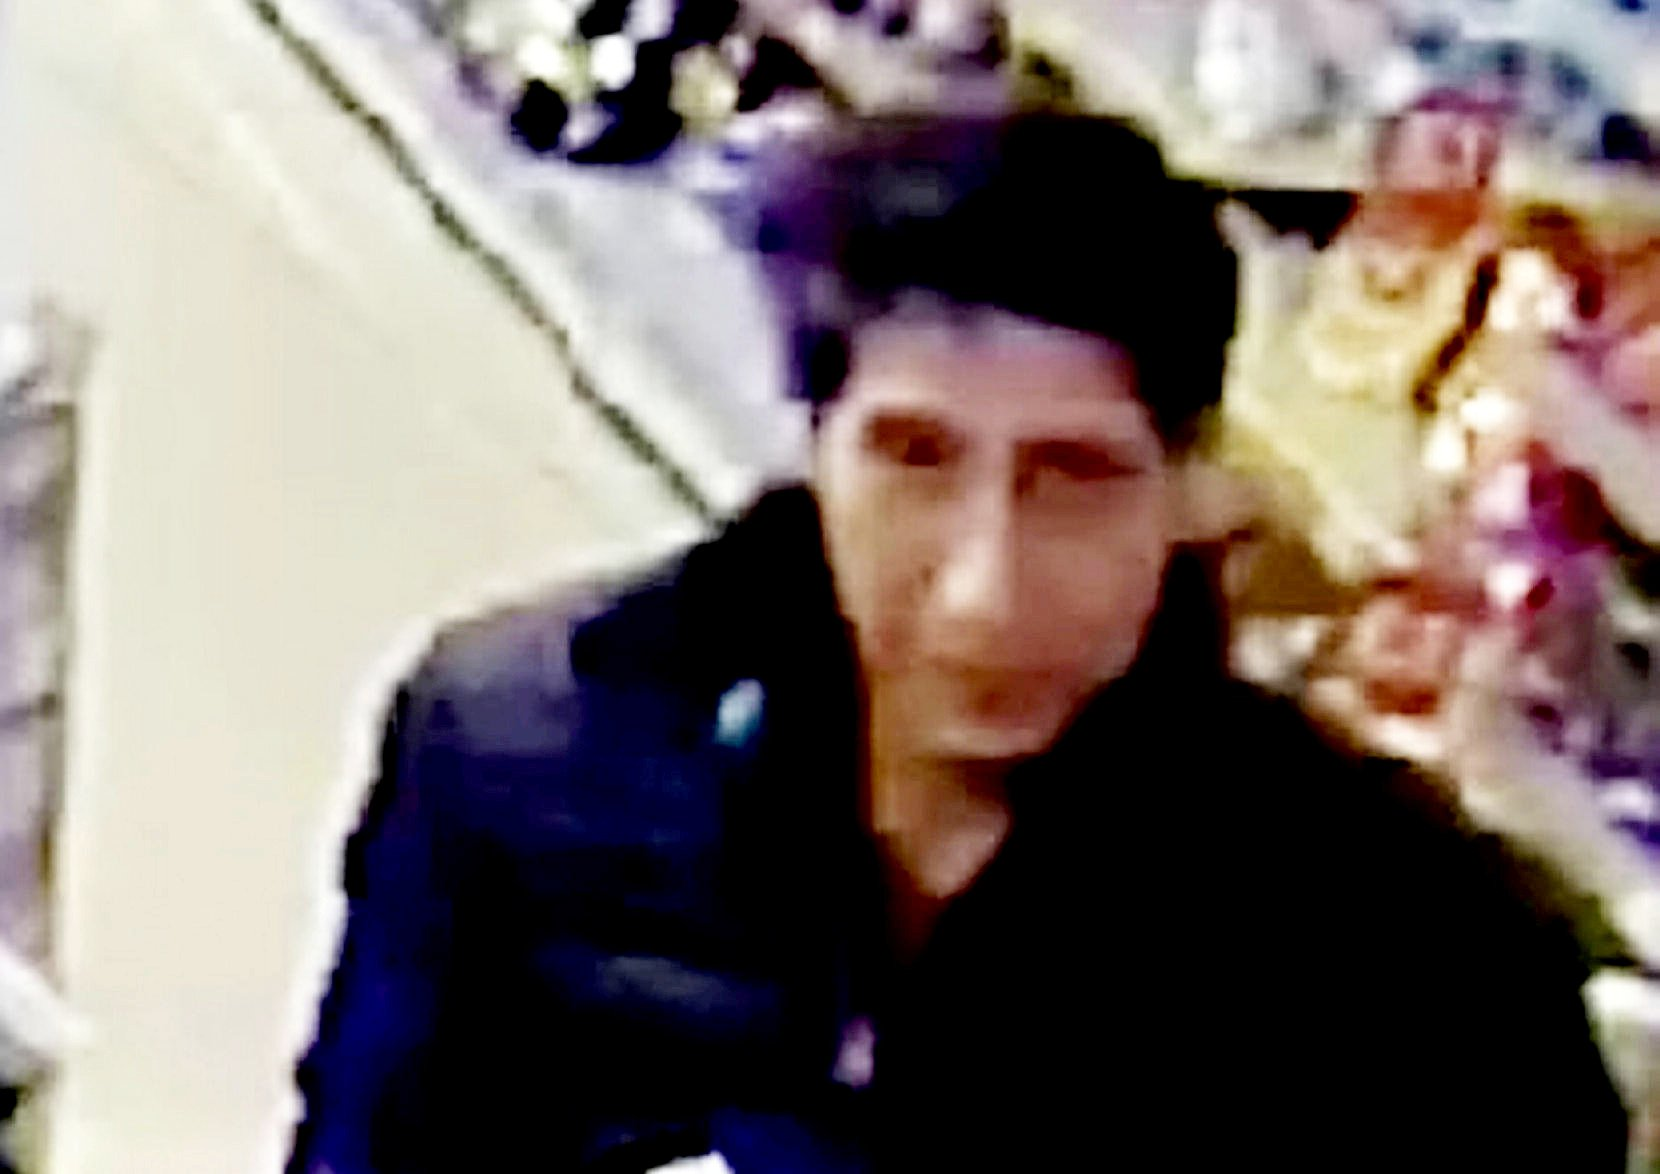 David Schwimmer lookalike arrested for 'stealing cans of lager'